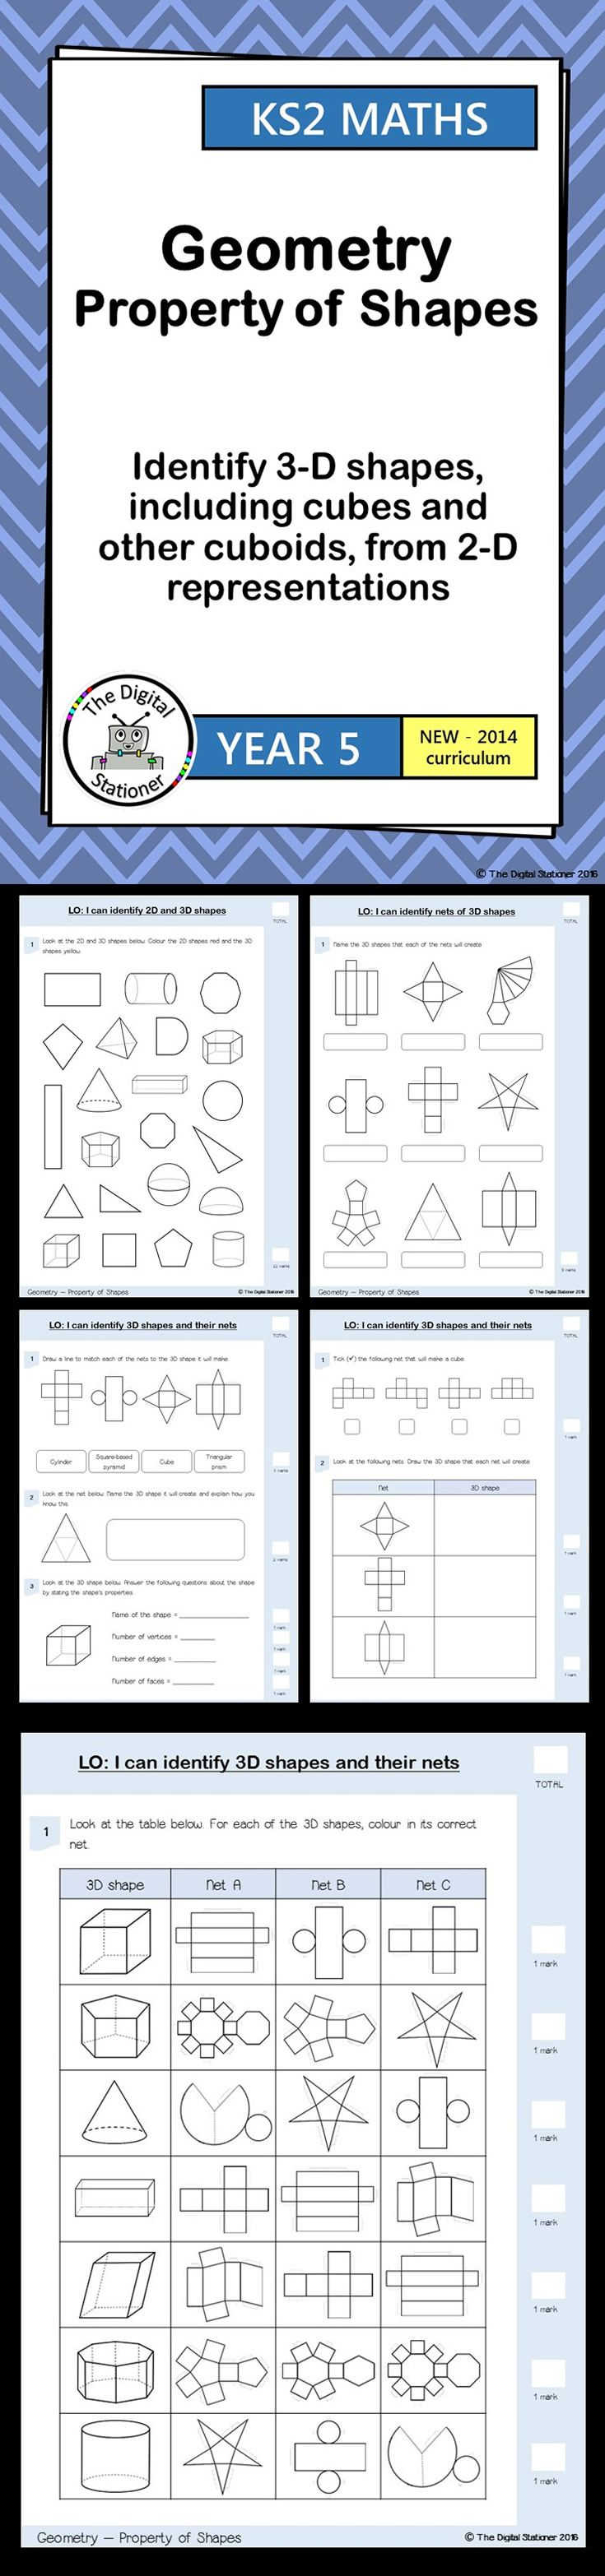 Year 5 - Identify 3D shapes, inc. cubes & cuboids from 2D representations -Geometry - Property of shape (inc. mastery).38 PDF printables. These include worksheets, 3D shape nets, mastery, extension and resource cards all designed for the 2014 curriculum.